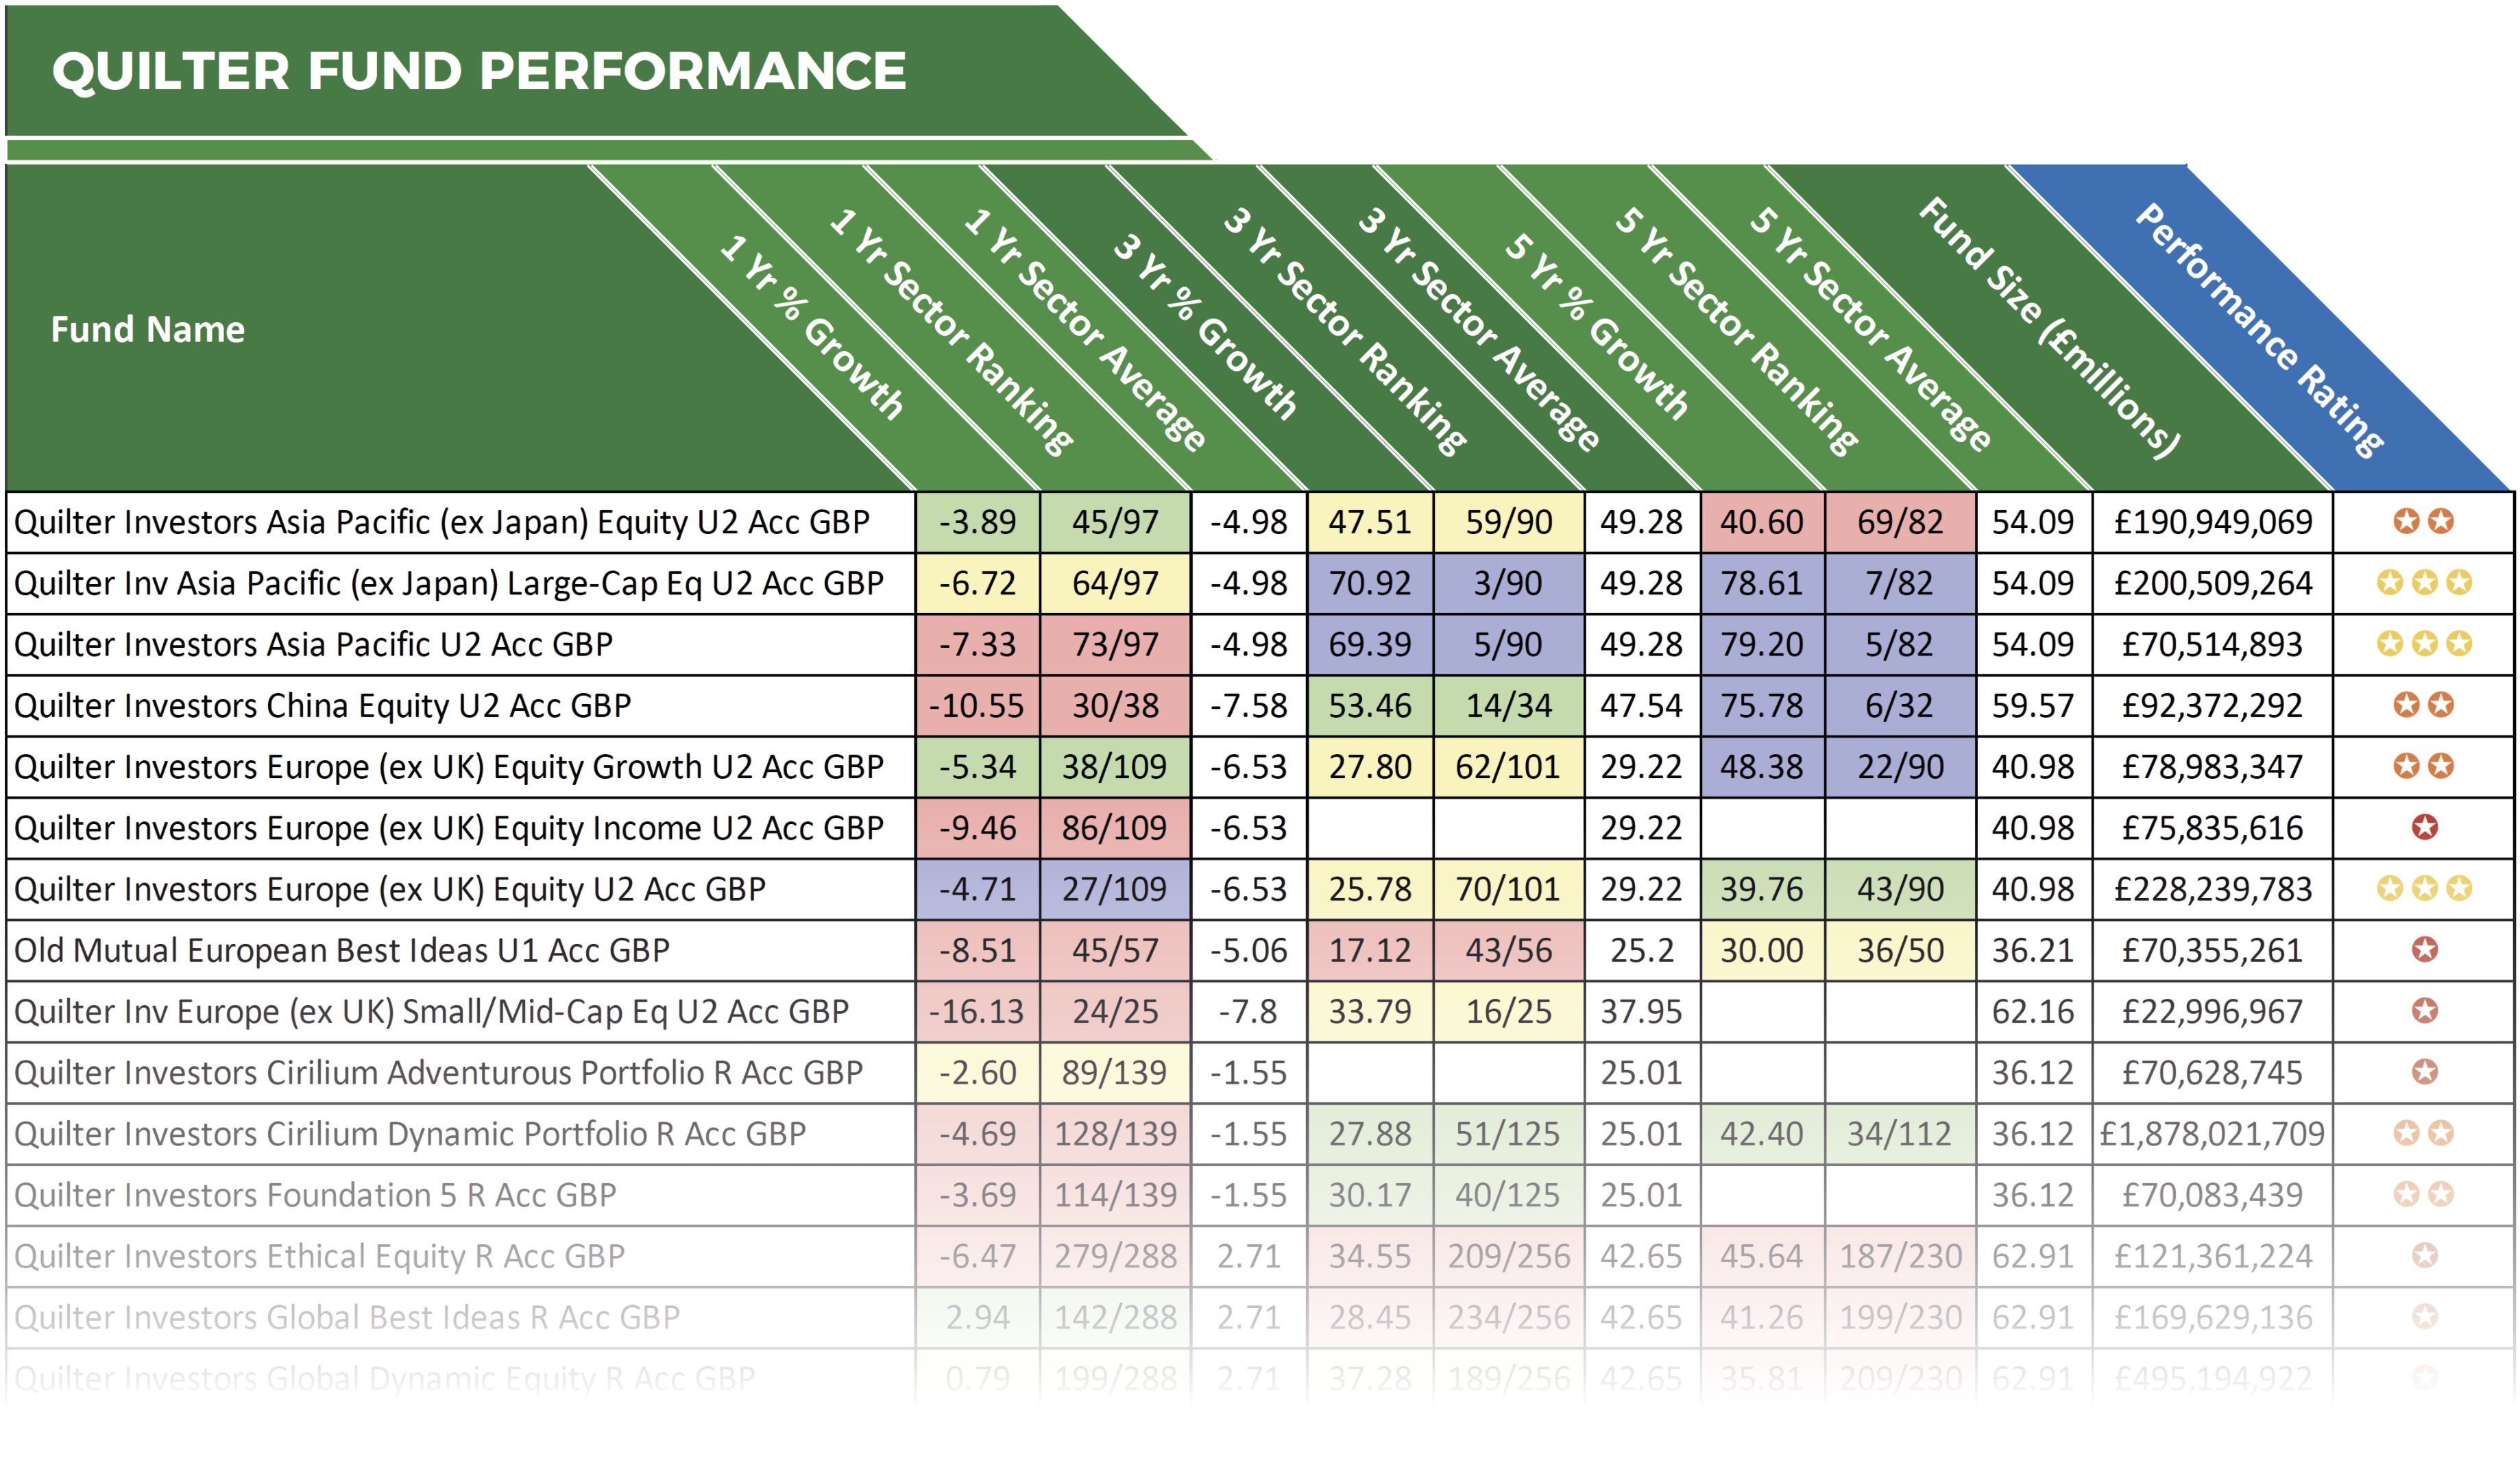 Quilter Fund Performance